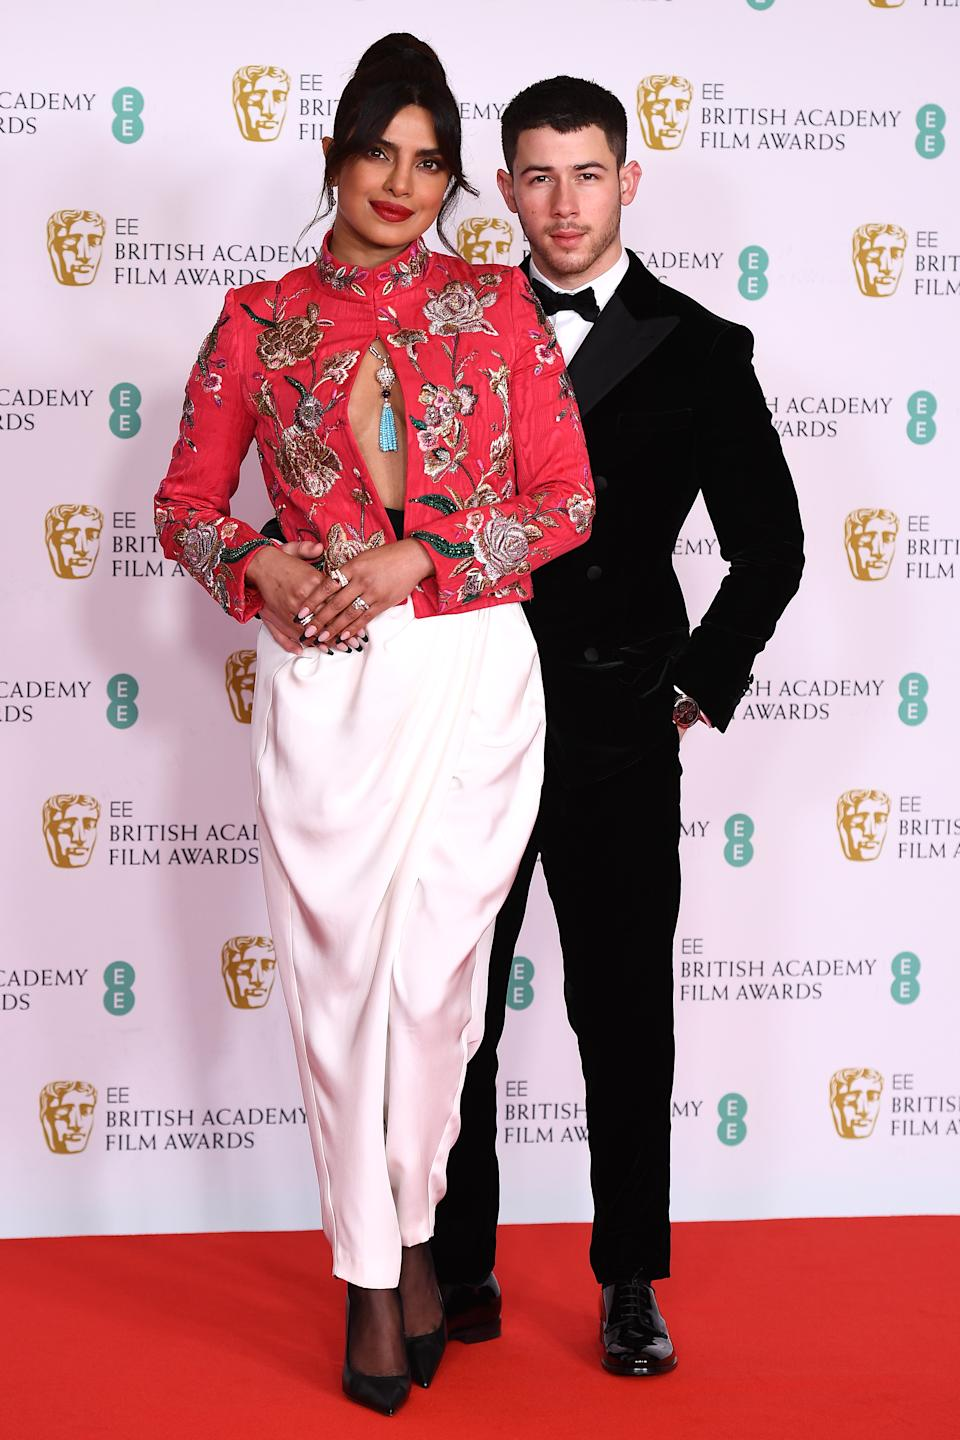 LONDON, ENGLAND - APRIL 11: Awards Presenter Priyanka Chopra Jonas with her husband Nick Jonas attend the EE British Academy Film Awards 2021 at the Royal Albert Hall on April 11, 2021 in London, England. (Photo by Jeff Spicer/Getty Images)